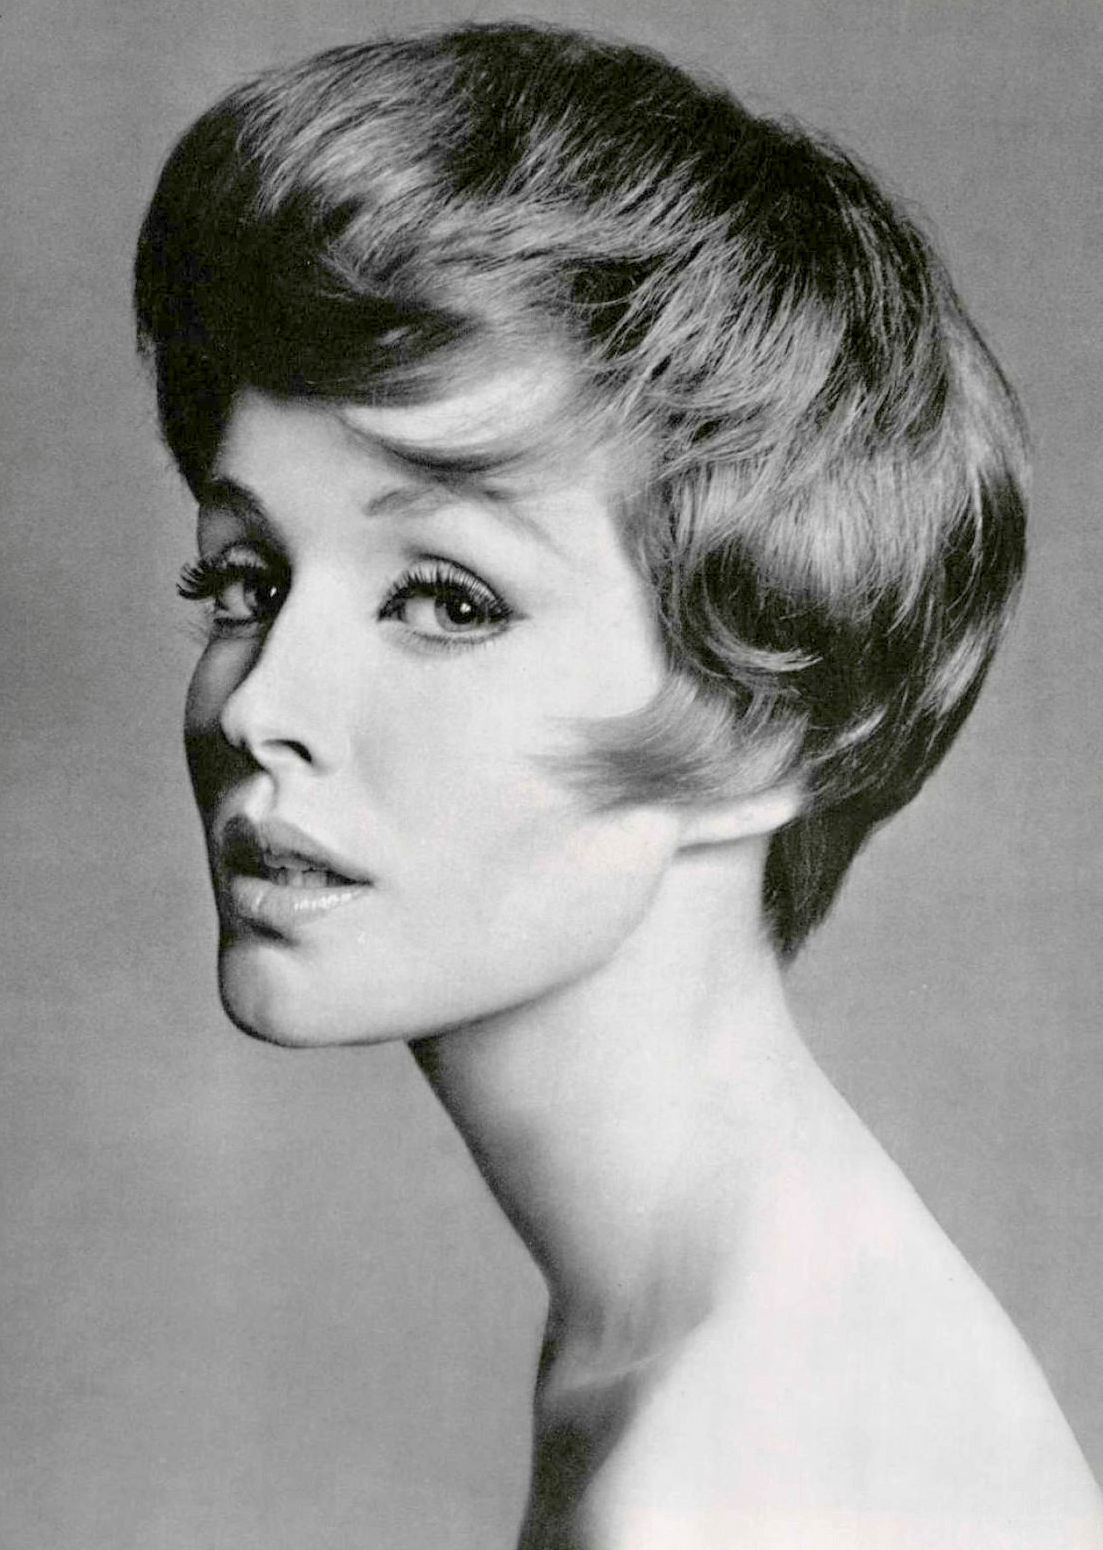 Coiffure 1960 Model 39s Coiffure By Guillaume Photo By Pottier 1960